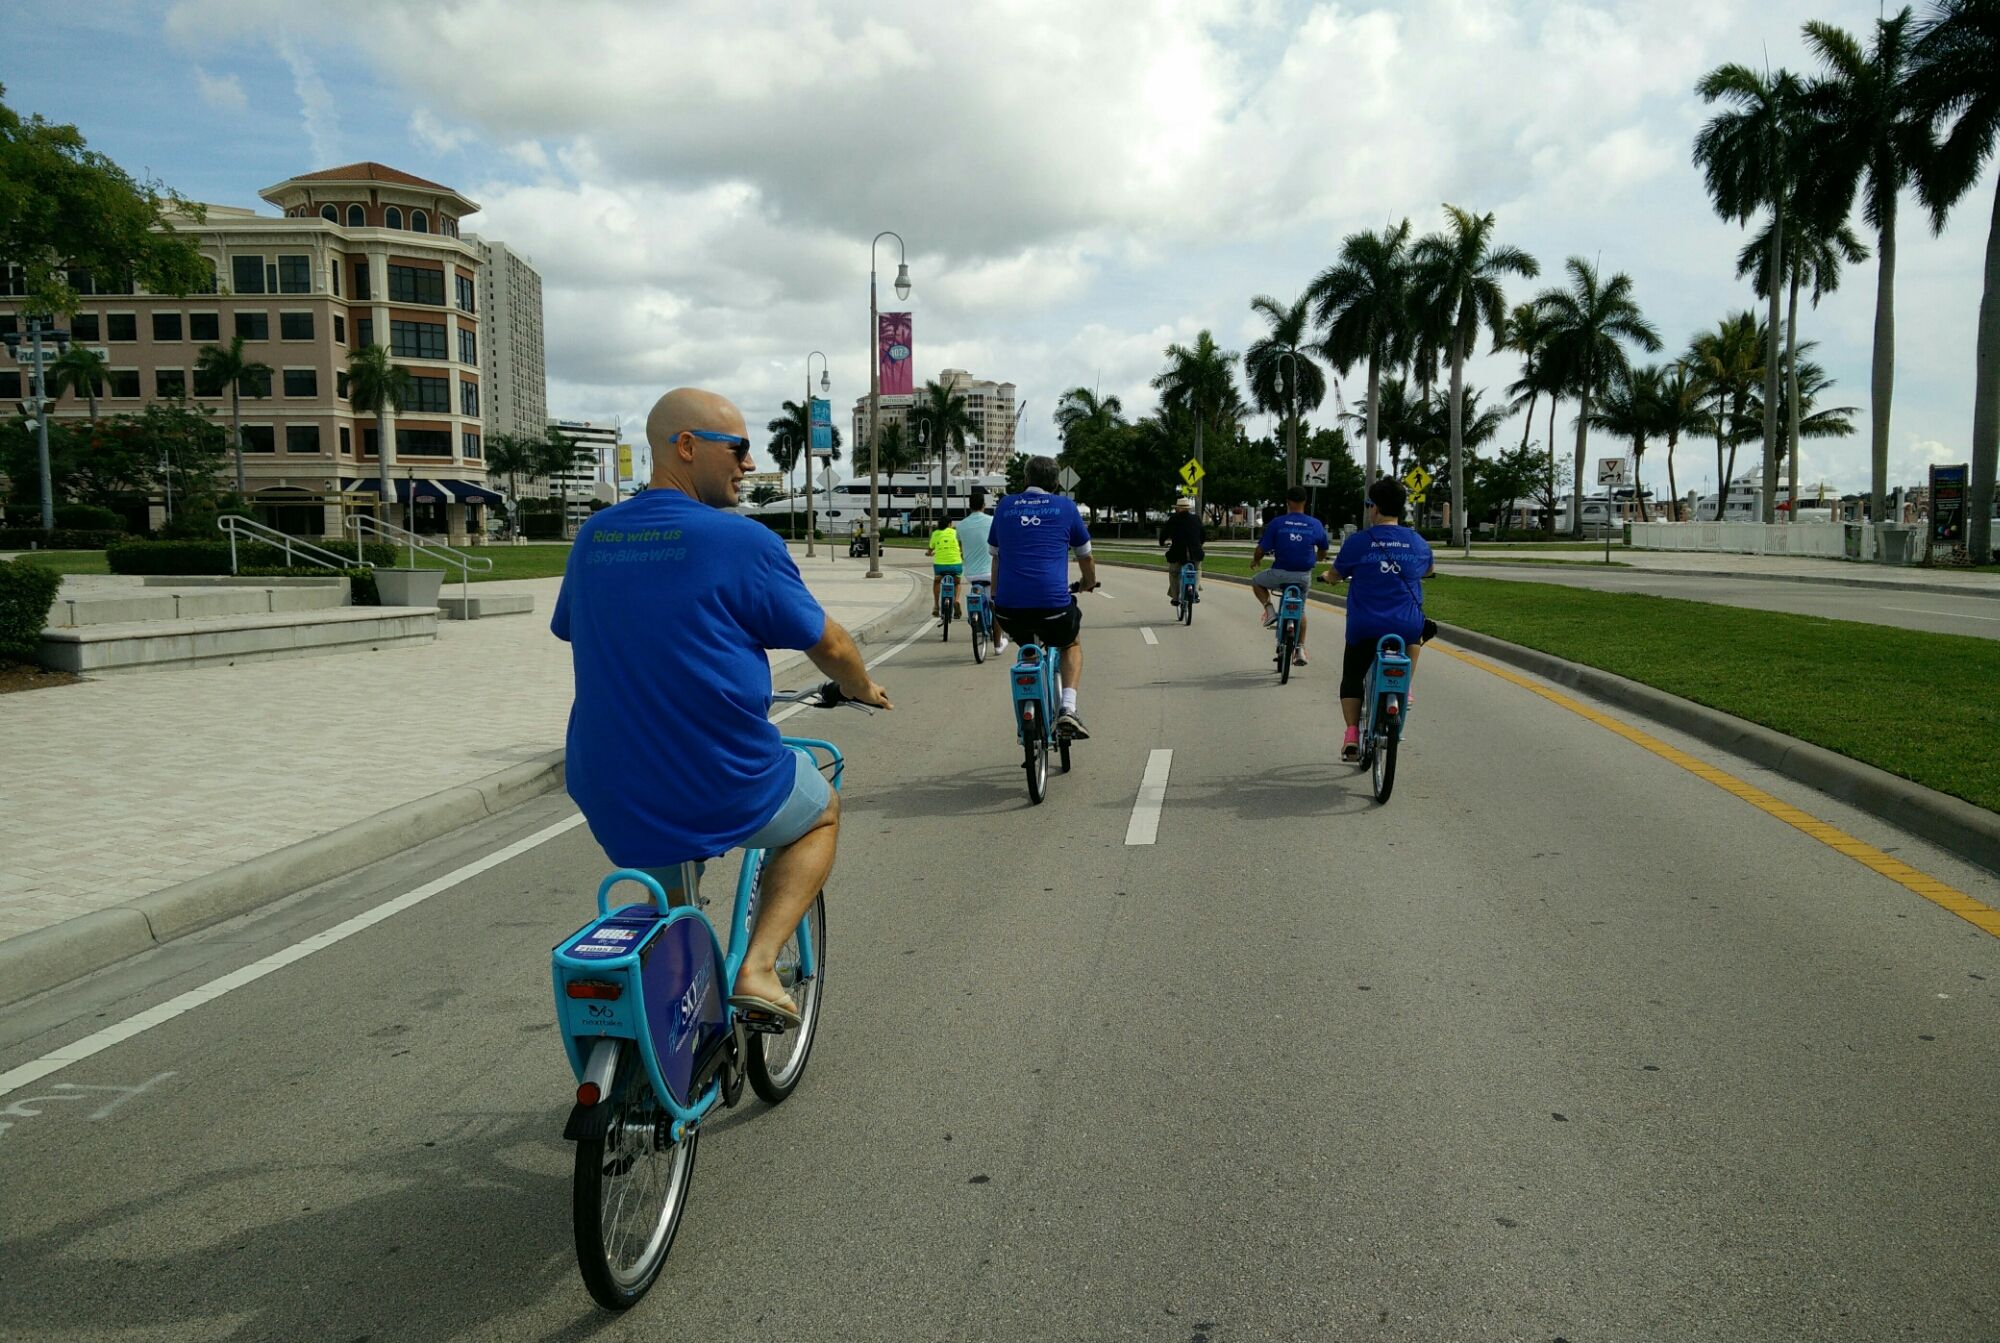 First @skybikewpb rides down the waterfront!